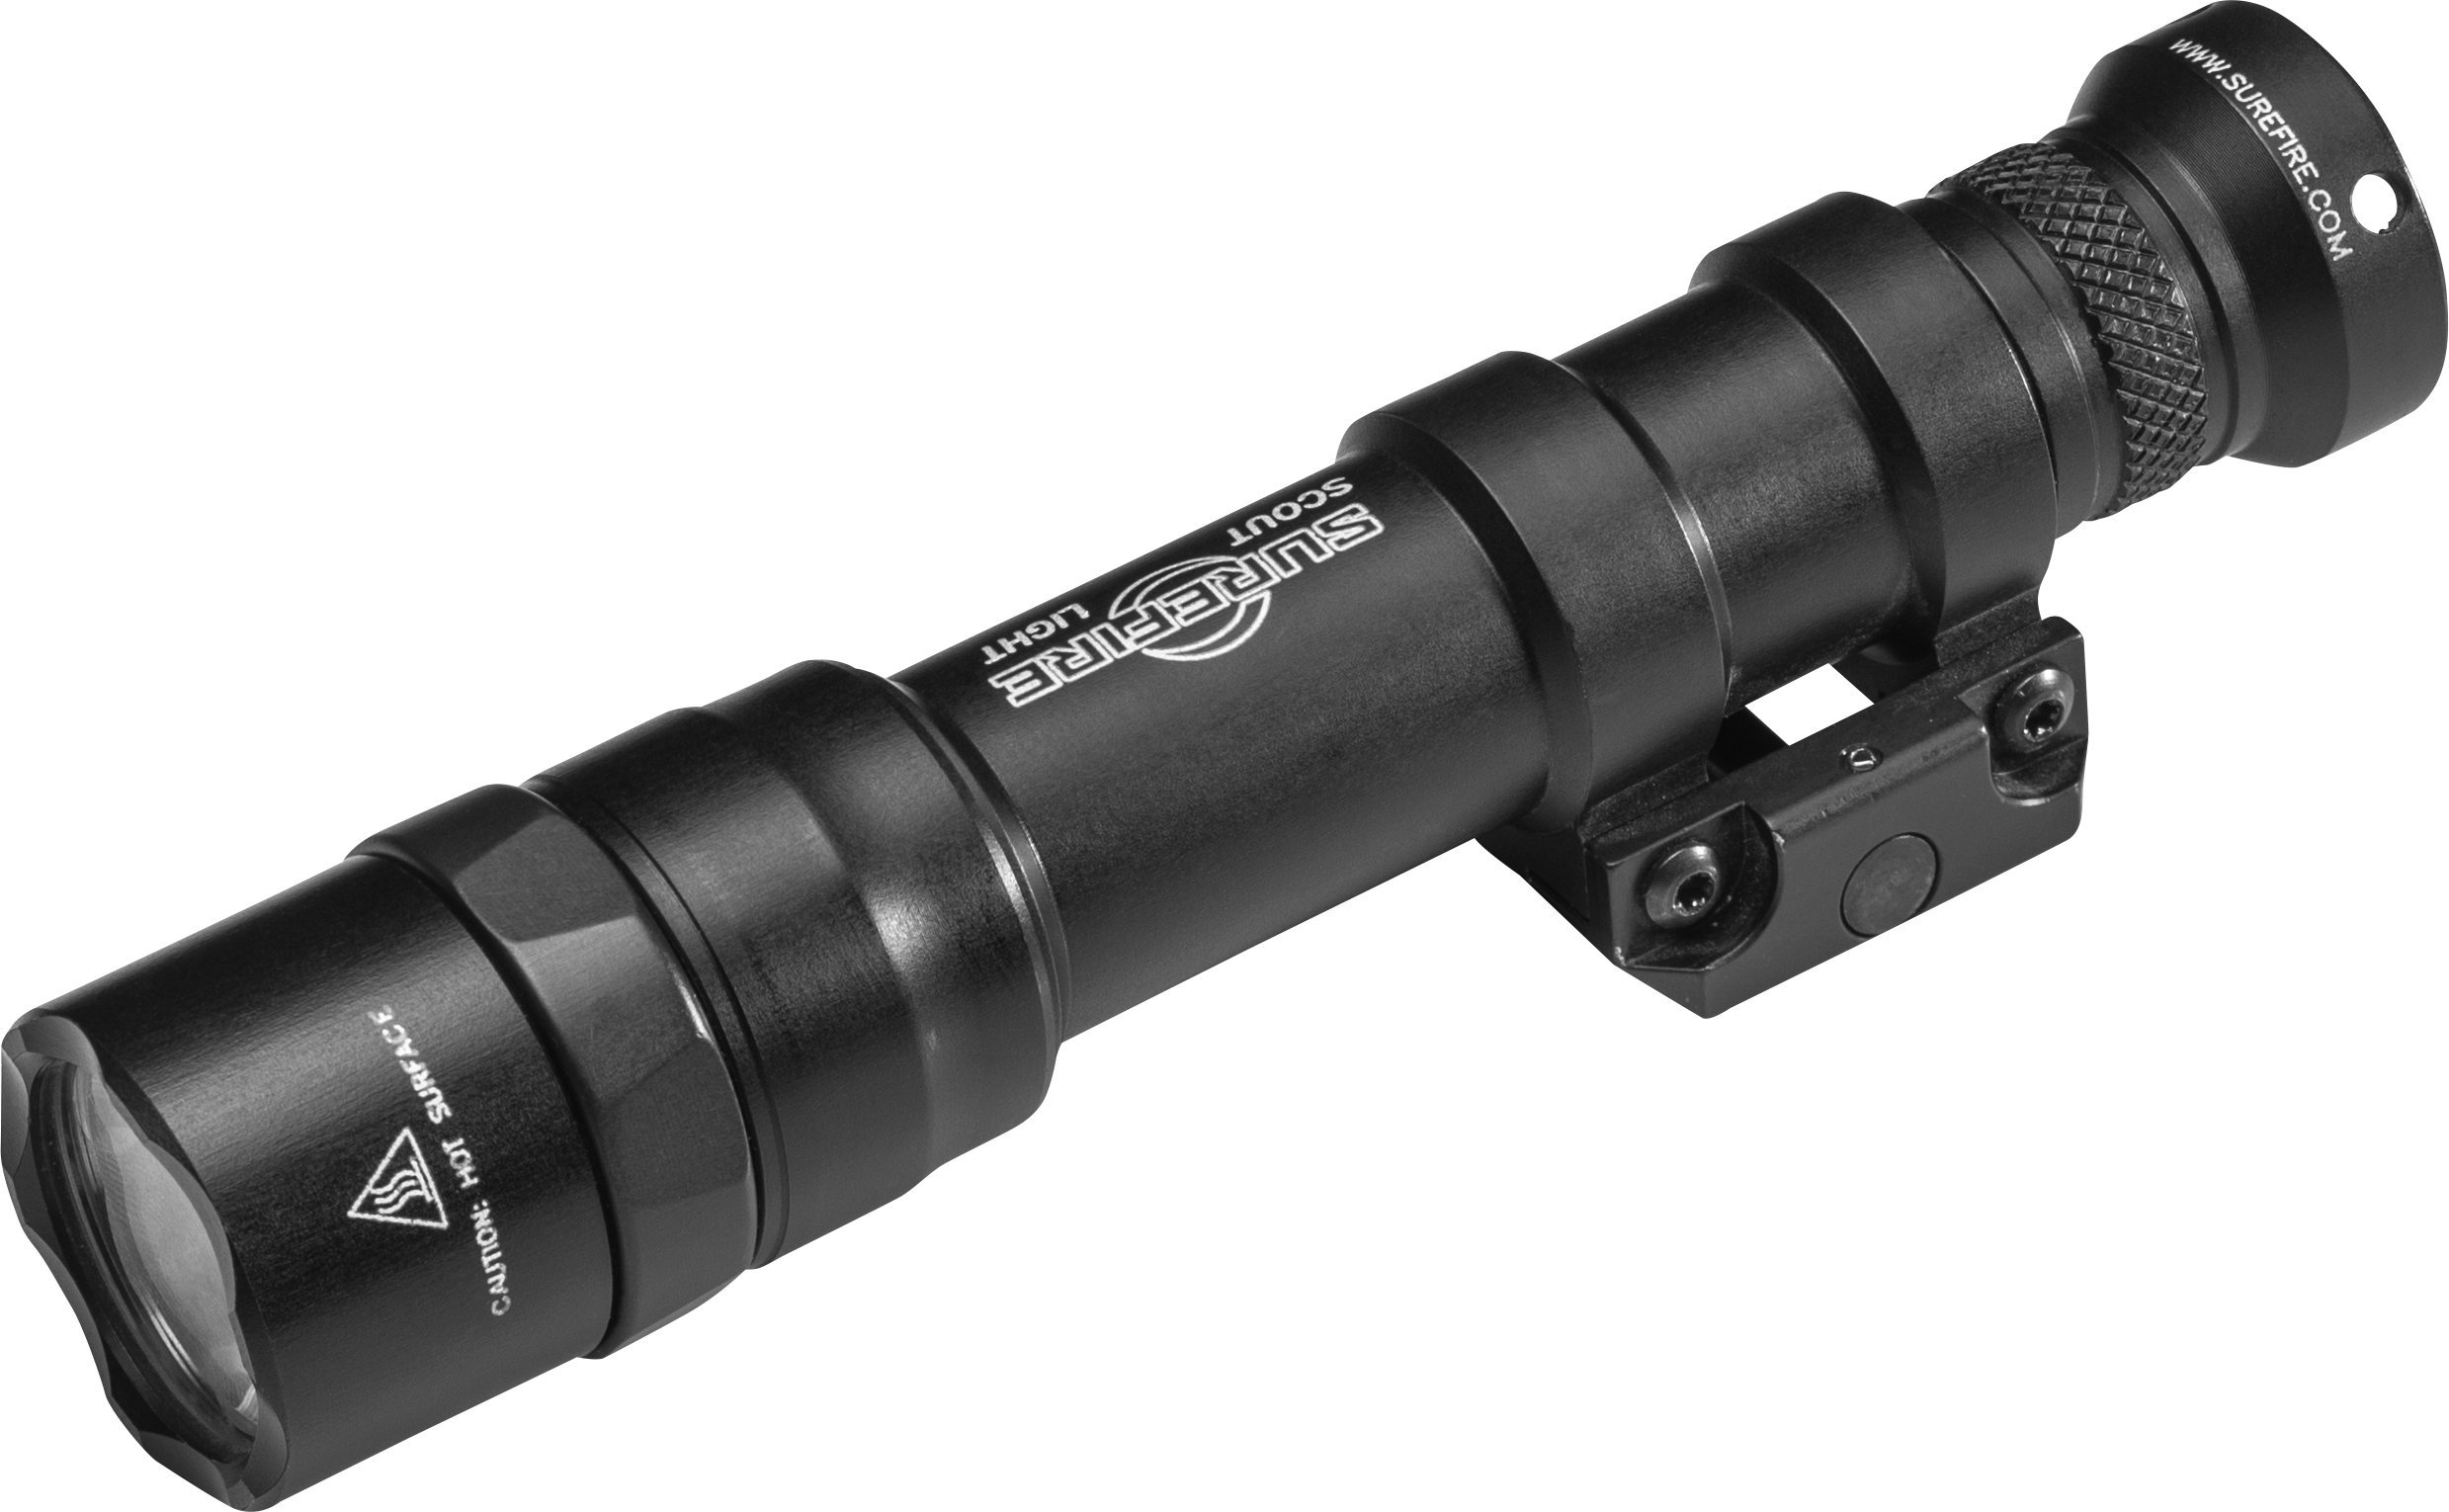 SureFire M600 Dual Fuel Scout Light with Z68 Switch and Thumbscrew Mount, Black